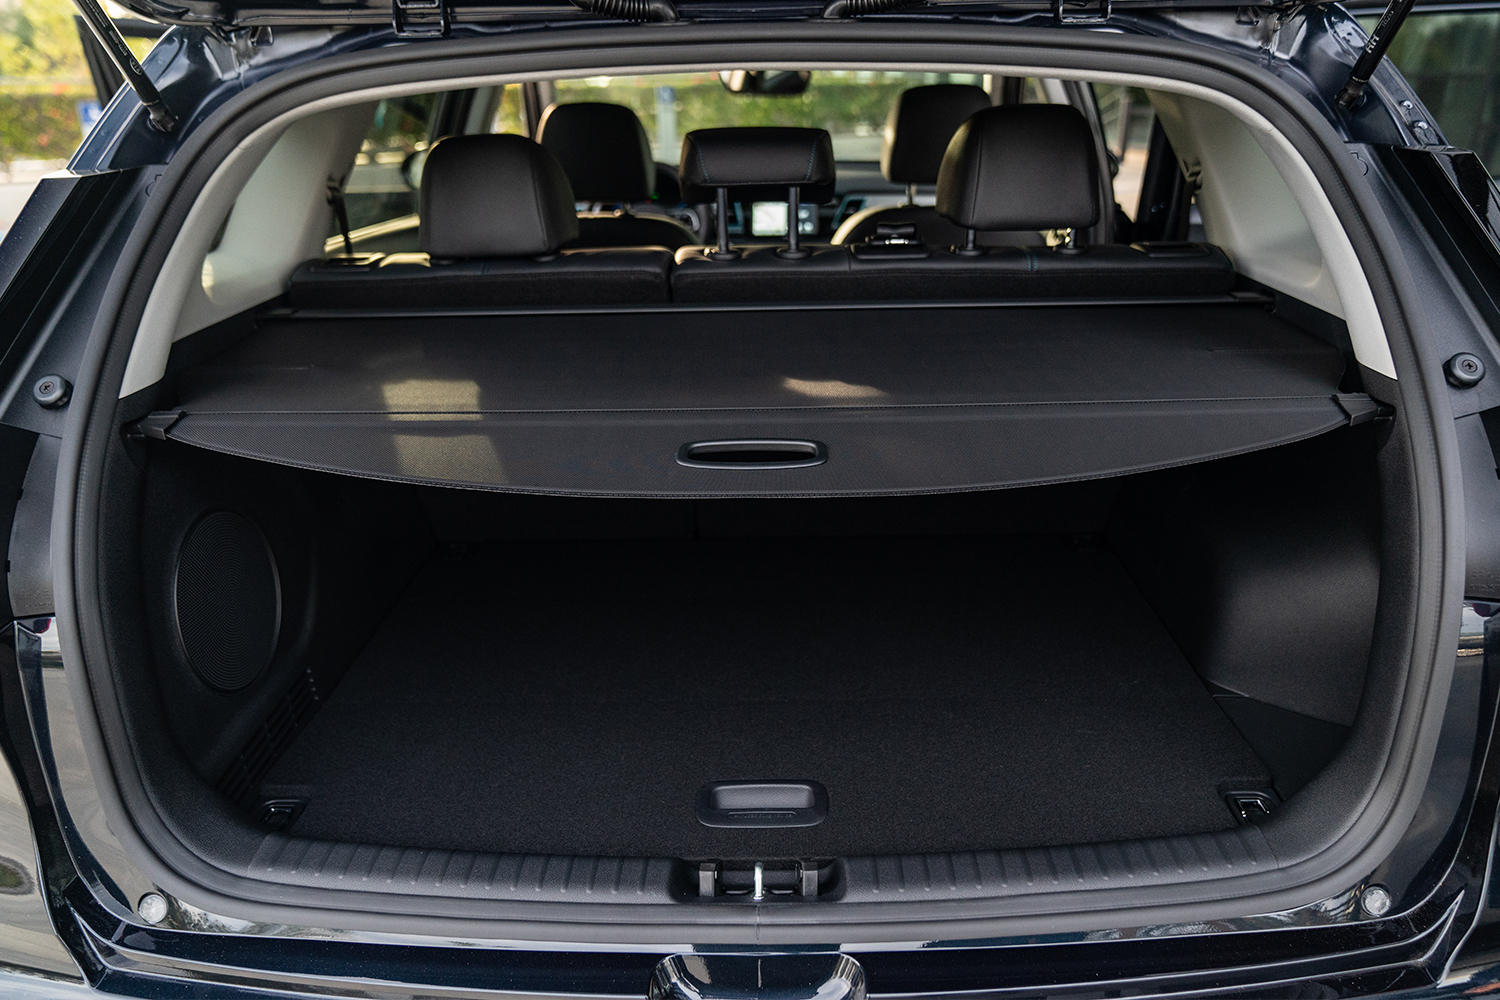 The trunk of the Kia Niro EV with the back door open